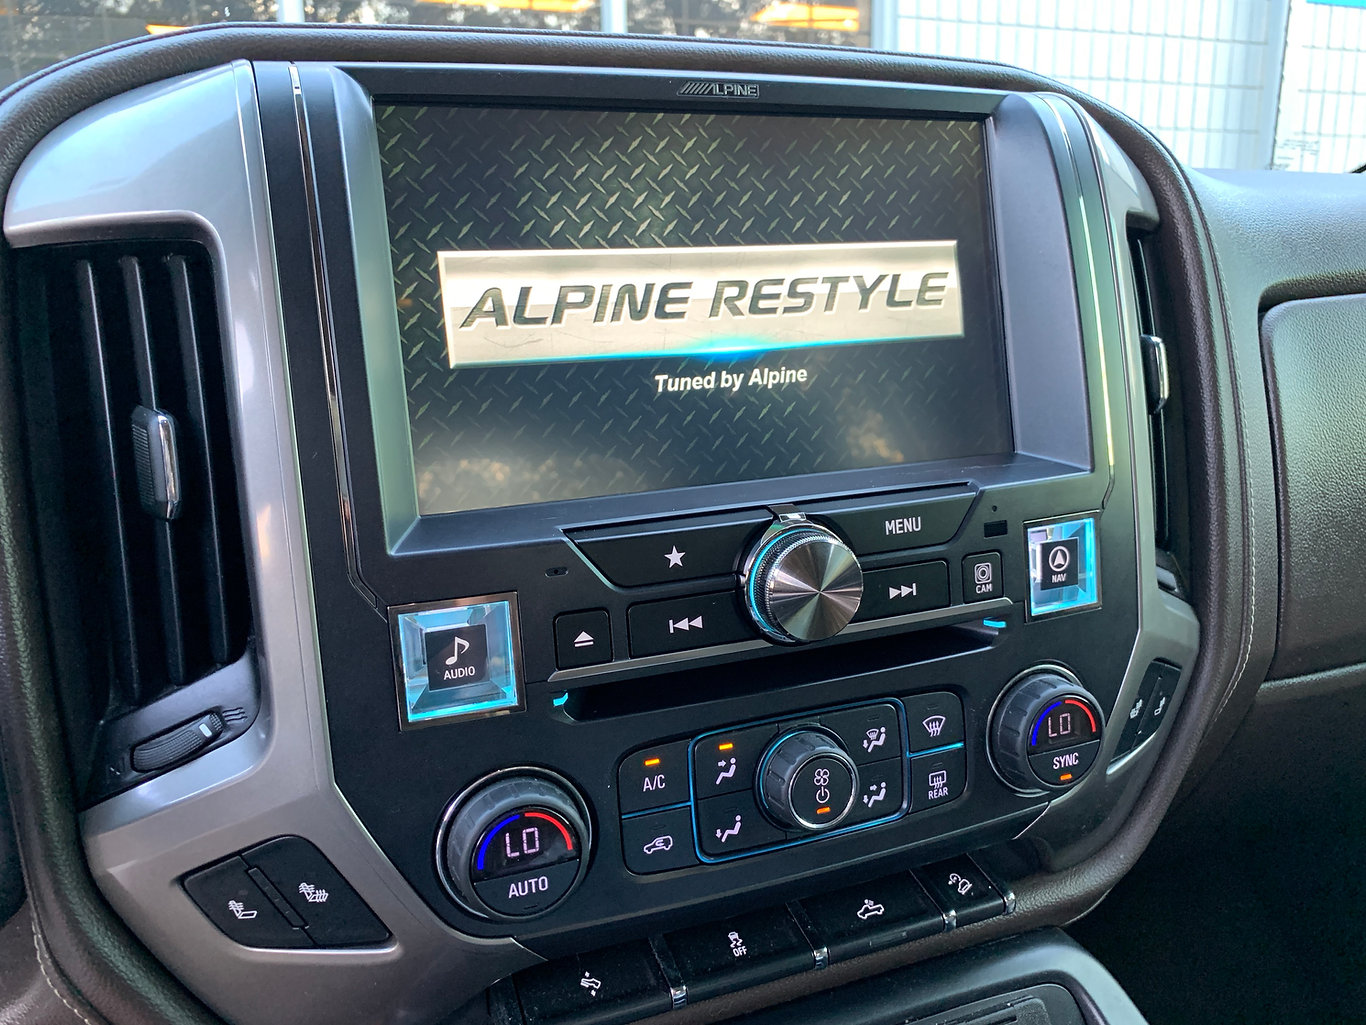 Sound Waves Car Audio Alarm Auto Upholstery Tint Memphis Alarms Installed Recent Installations